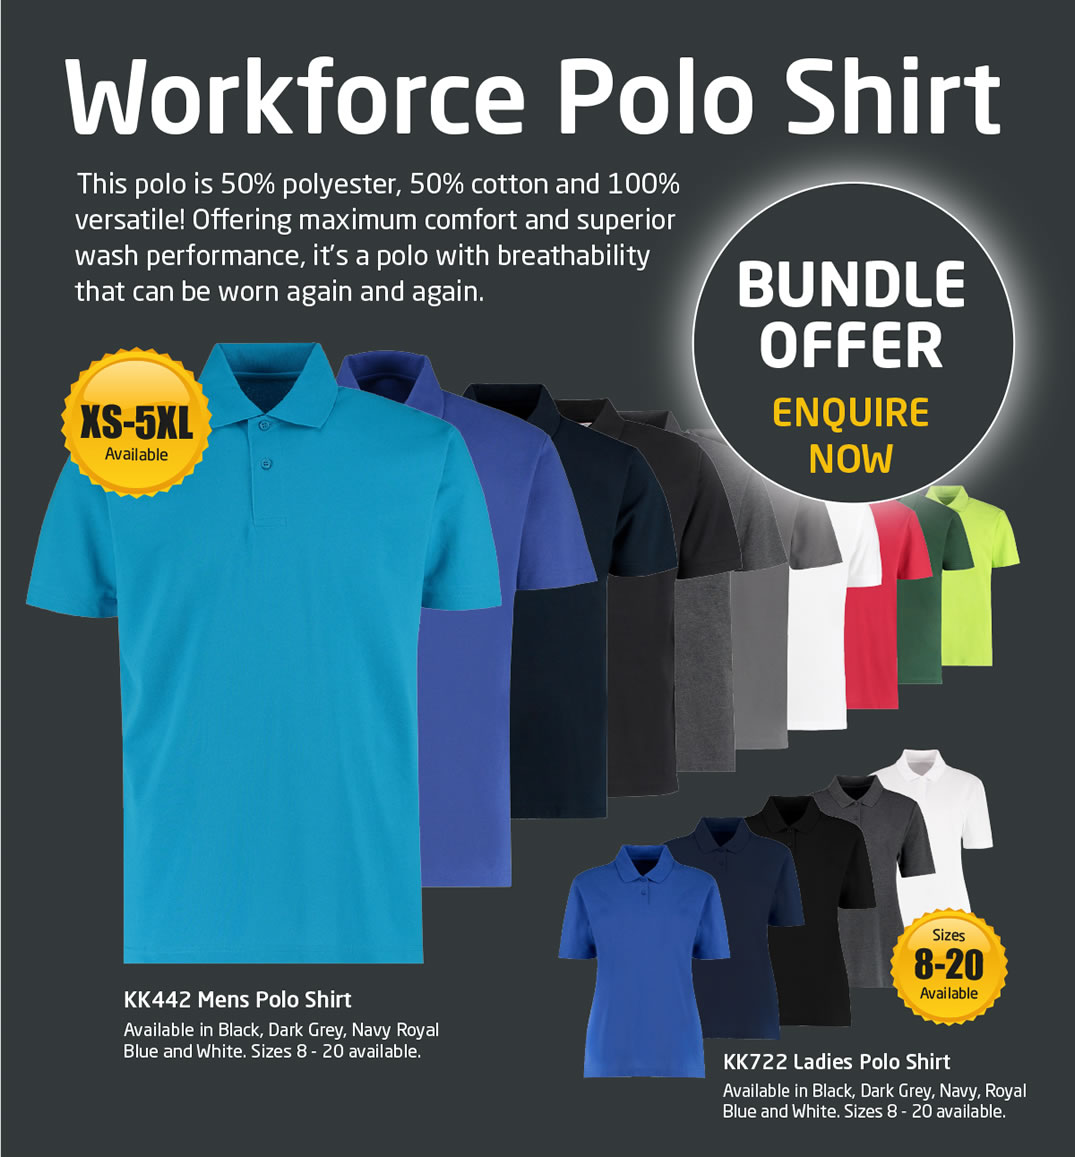 Workforce Polo Shirt - Bundle Offer